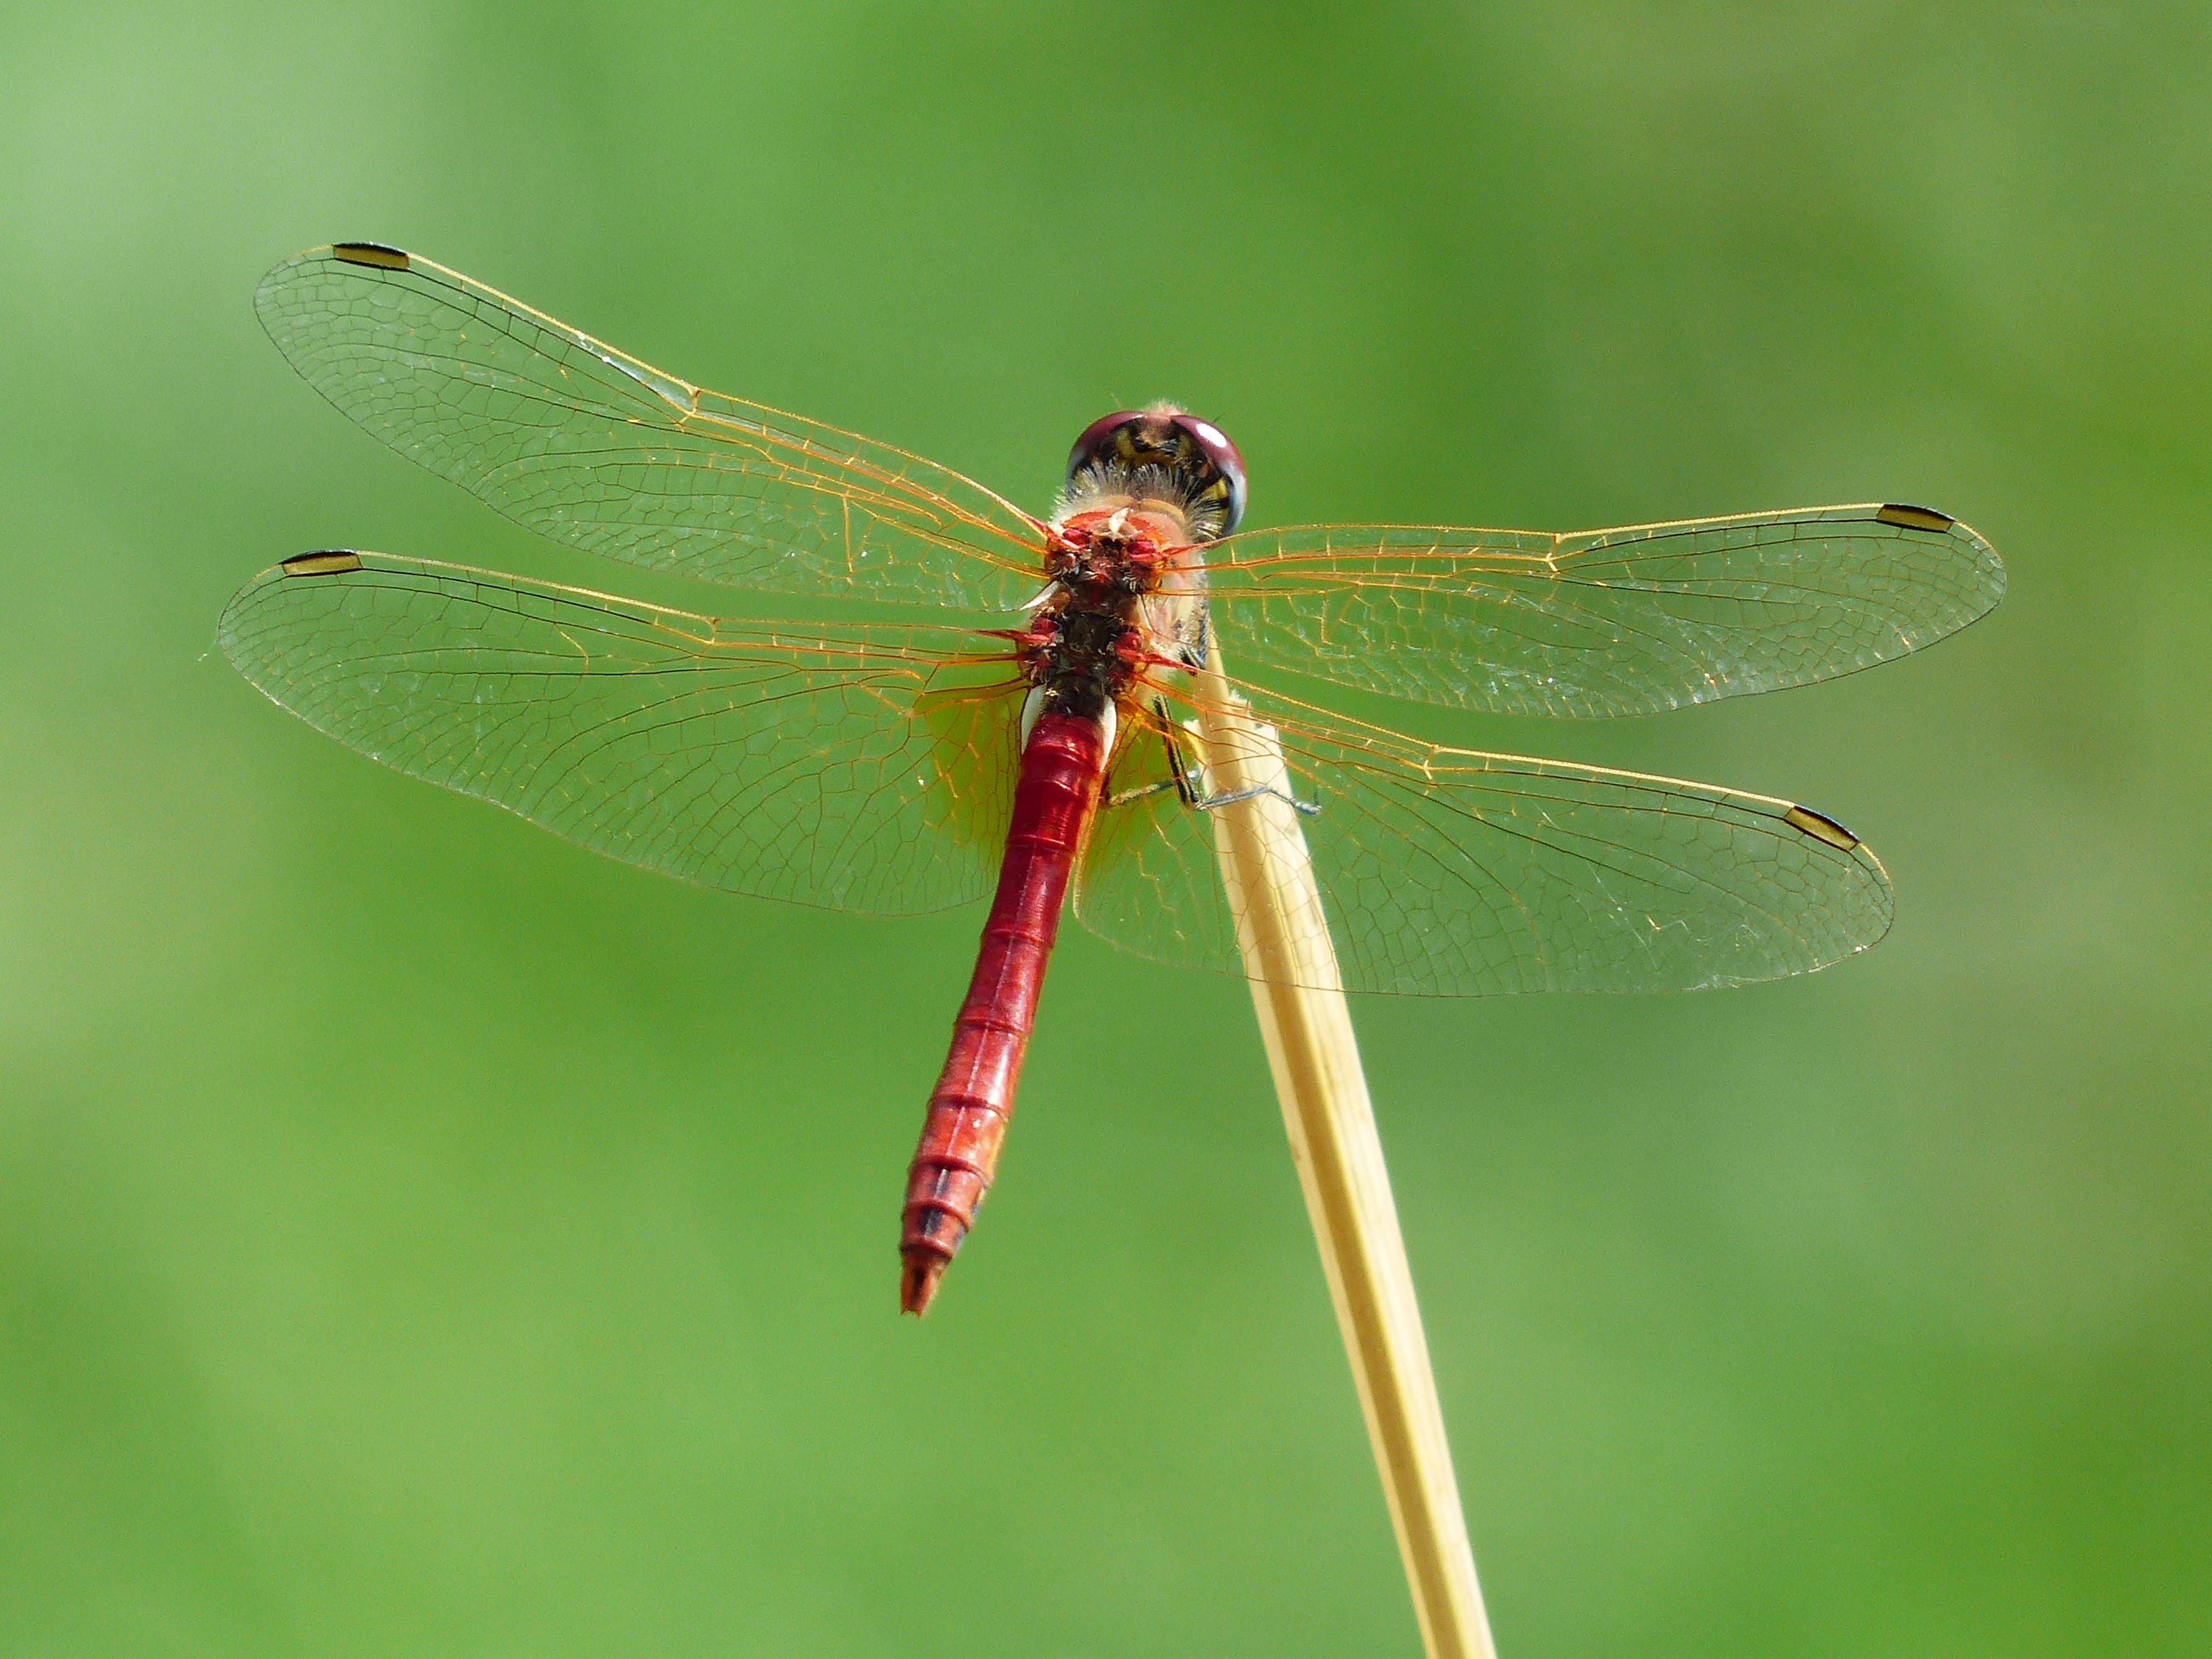 Red Dragonfly on Brown Twig